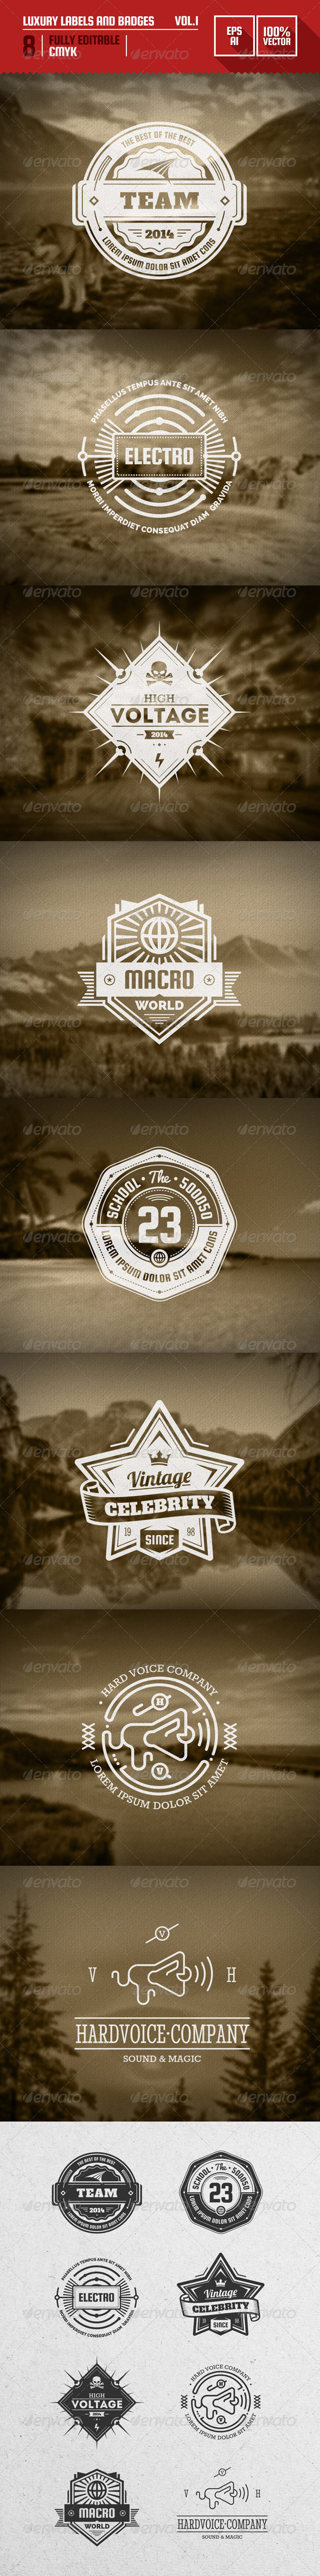 Luxury Labels and Badges Vol.1 - Badges & Stickers Web Elements